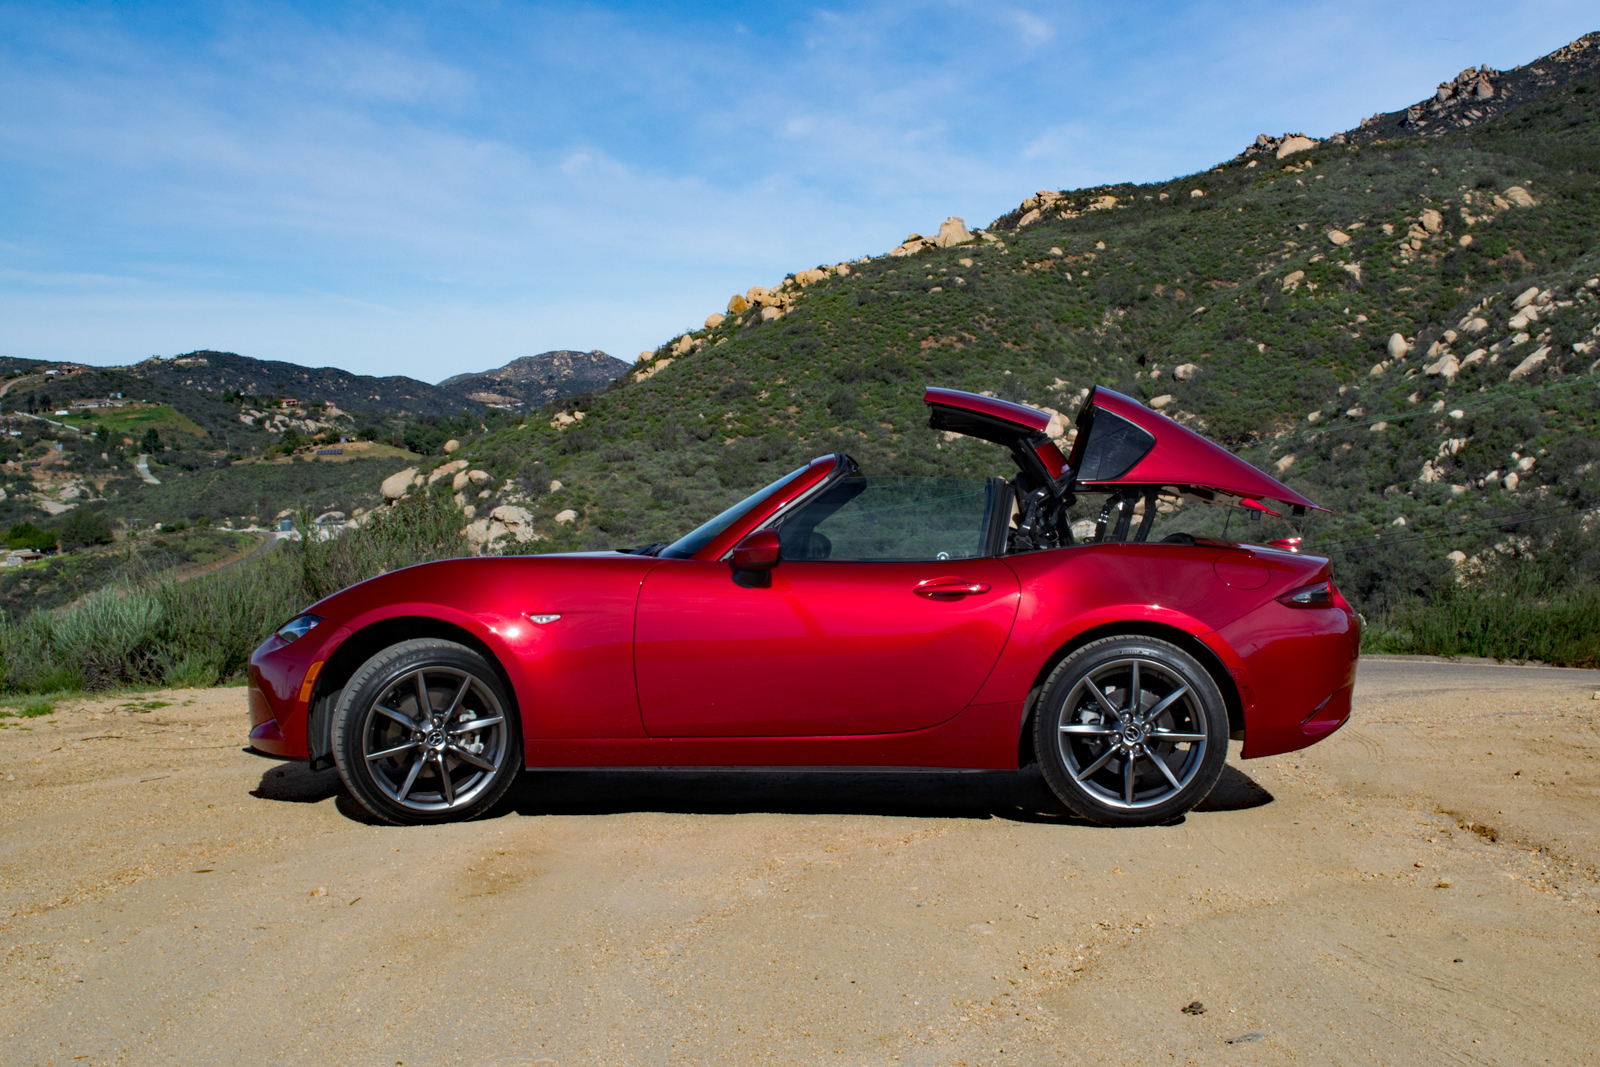 Mazda Miata Used Car